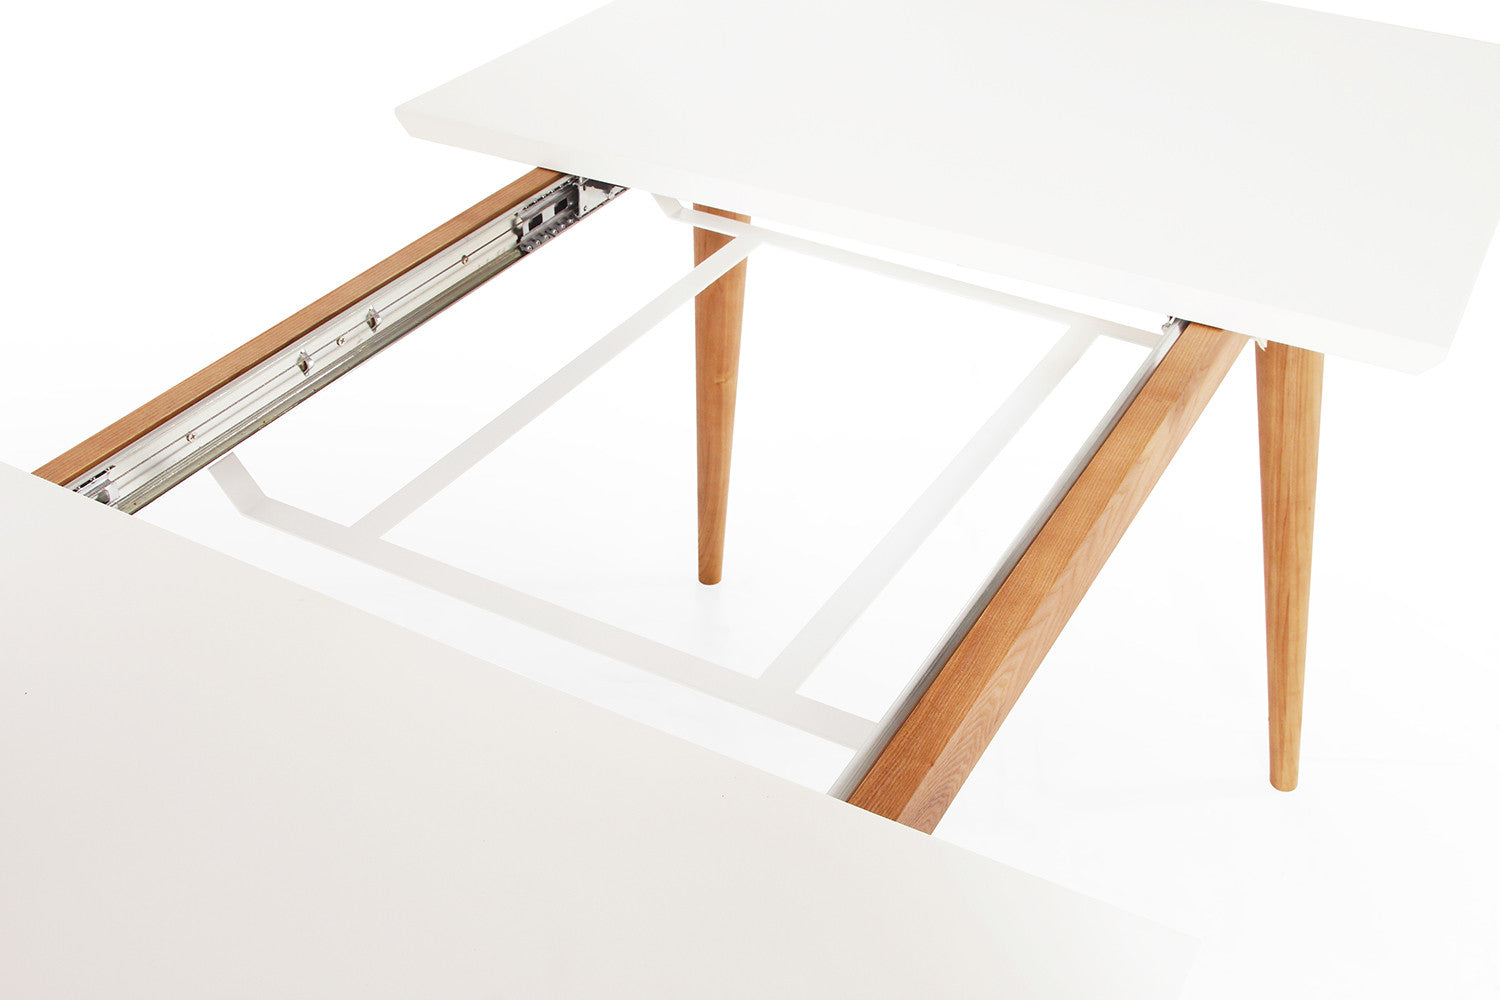 Table de salle manger extensible scandinave wyna dewarens for Table a manger extensible bois